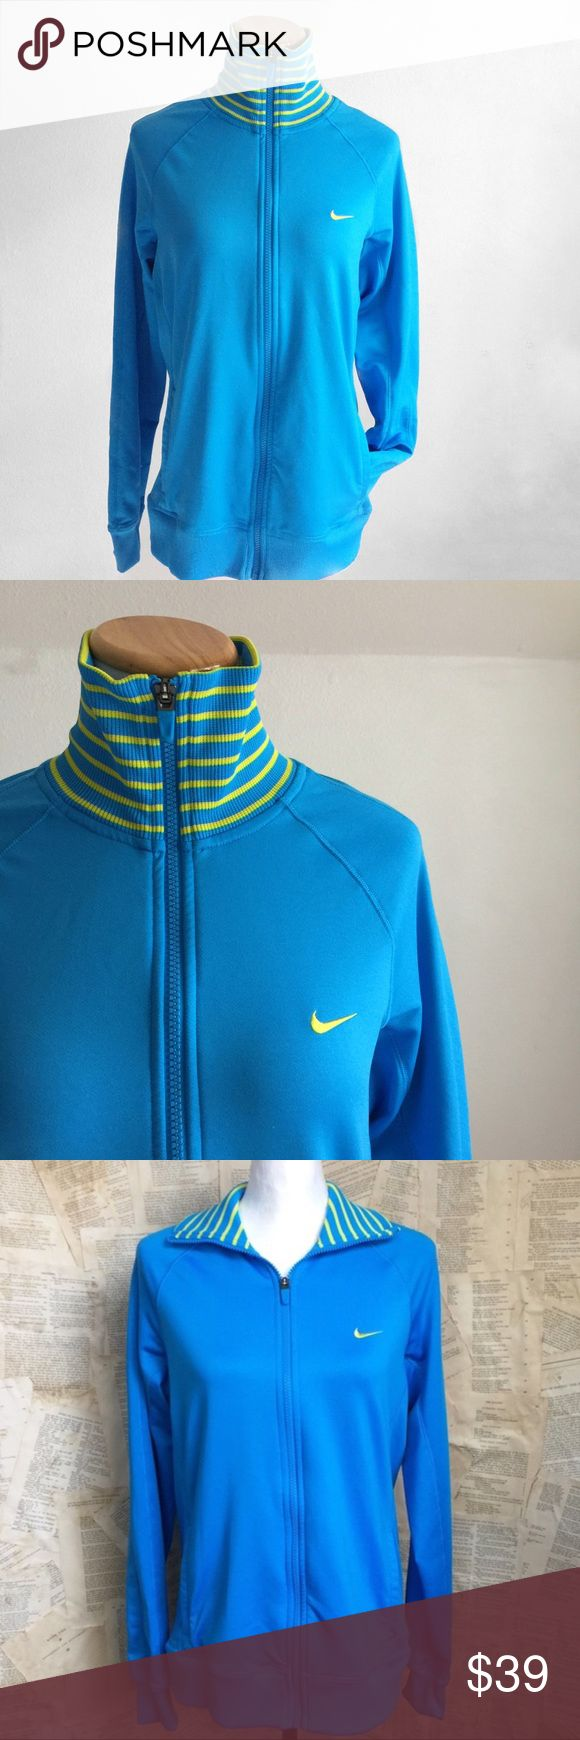 "Nike Track Jacket Nike Track Jacket. Striped ribbed collar gives a retro vibe. Front swoosh logo. Front pockets. Zip closure. Dri-fit. EUC. Underarm to underarm 20"". Length 26"". A04 Nike Jackets & Coats"